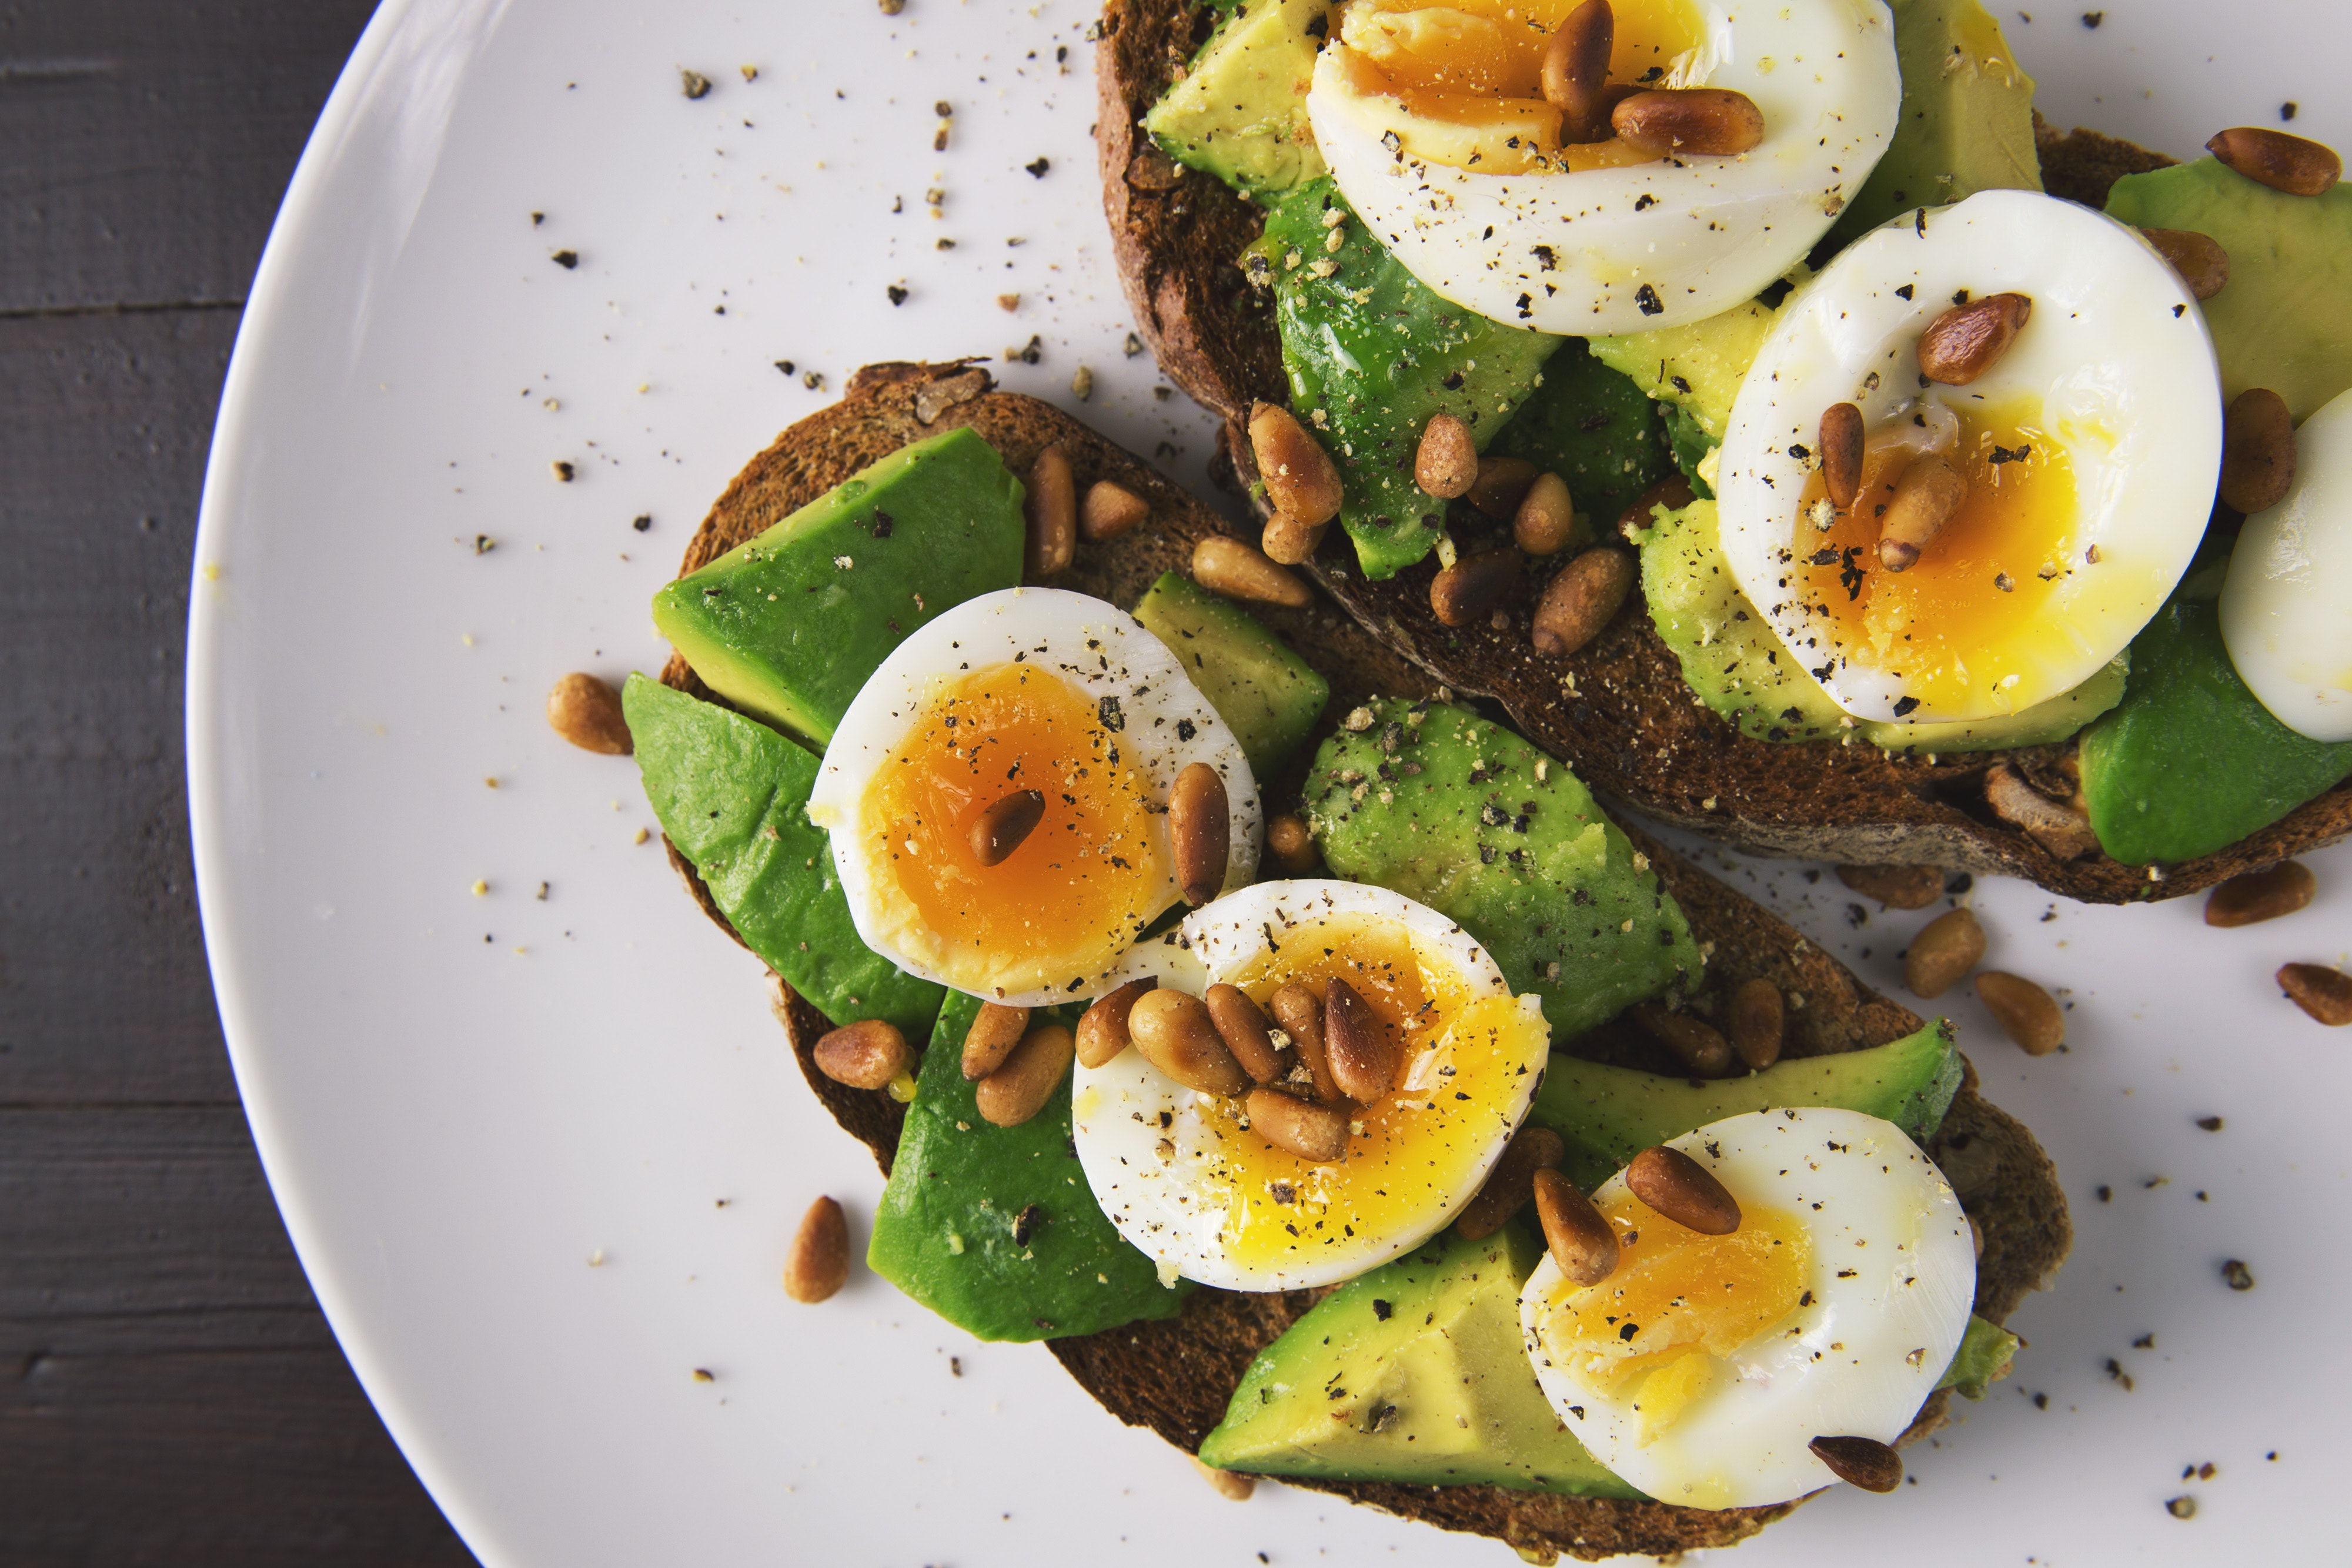 Avocado toast with egg and pine nuts